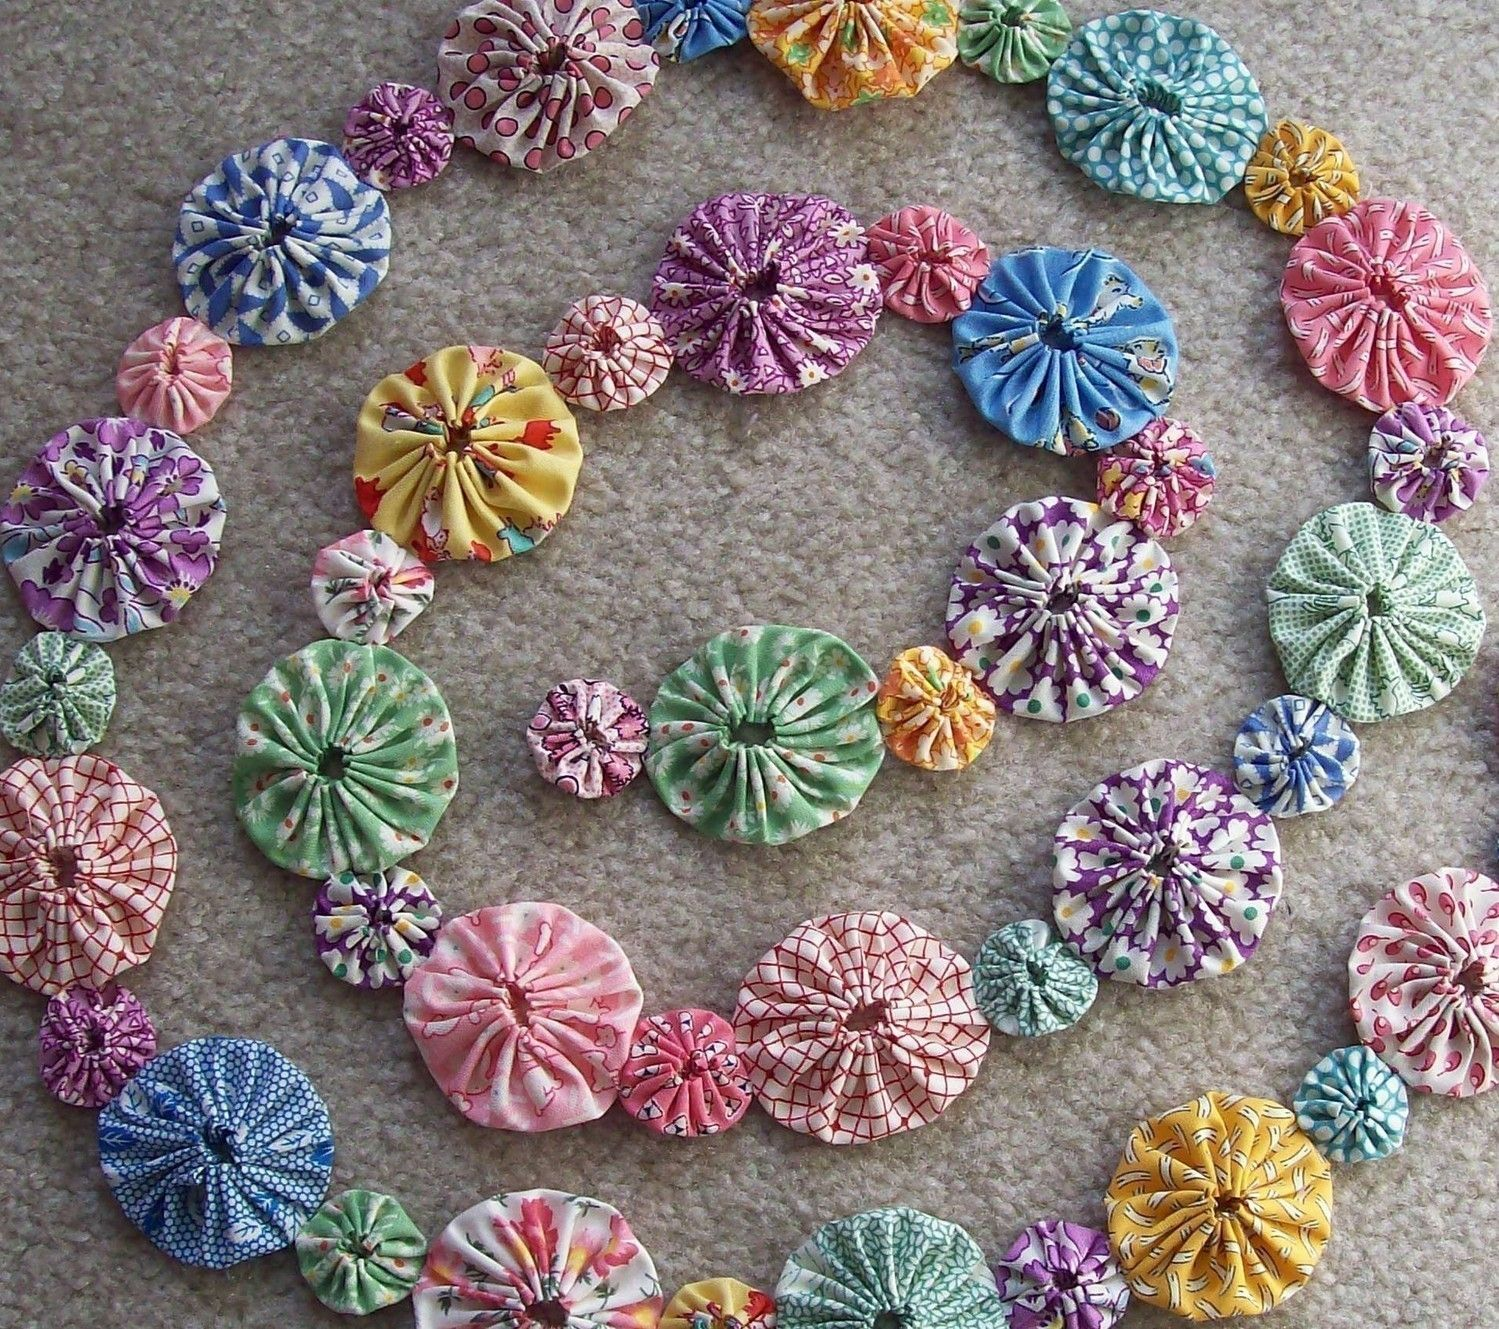 Fabric yo yo garland! My mom has always made these into quilts!